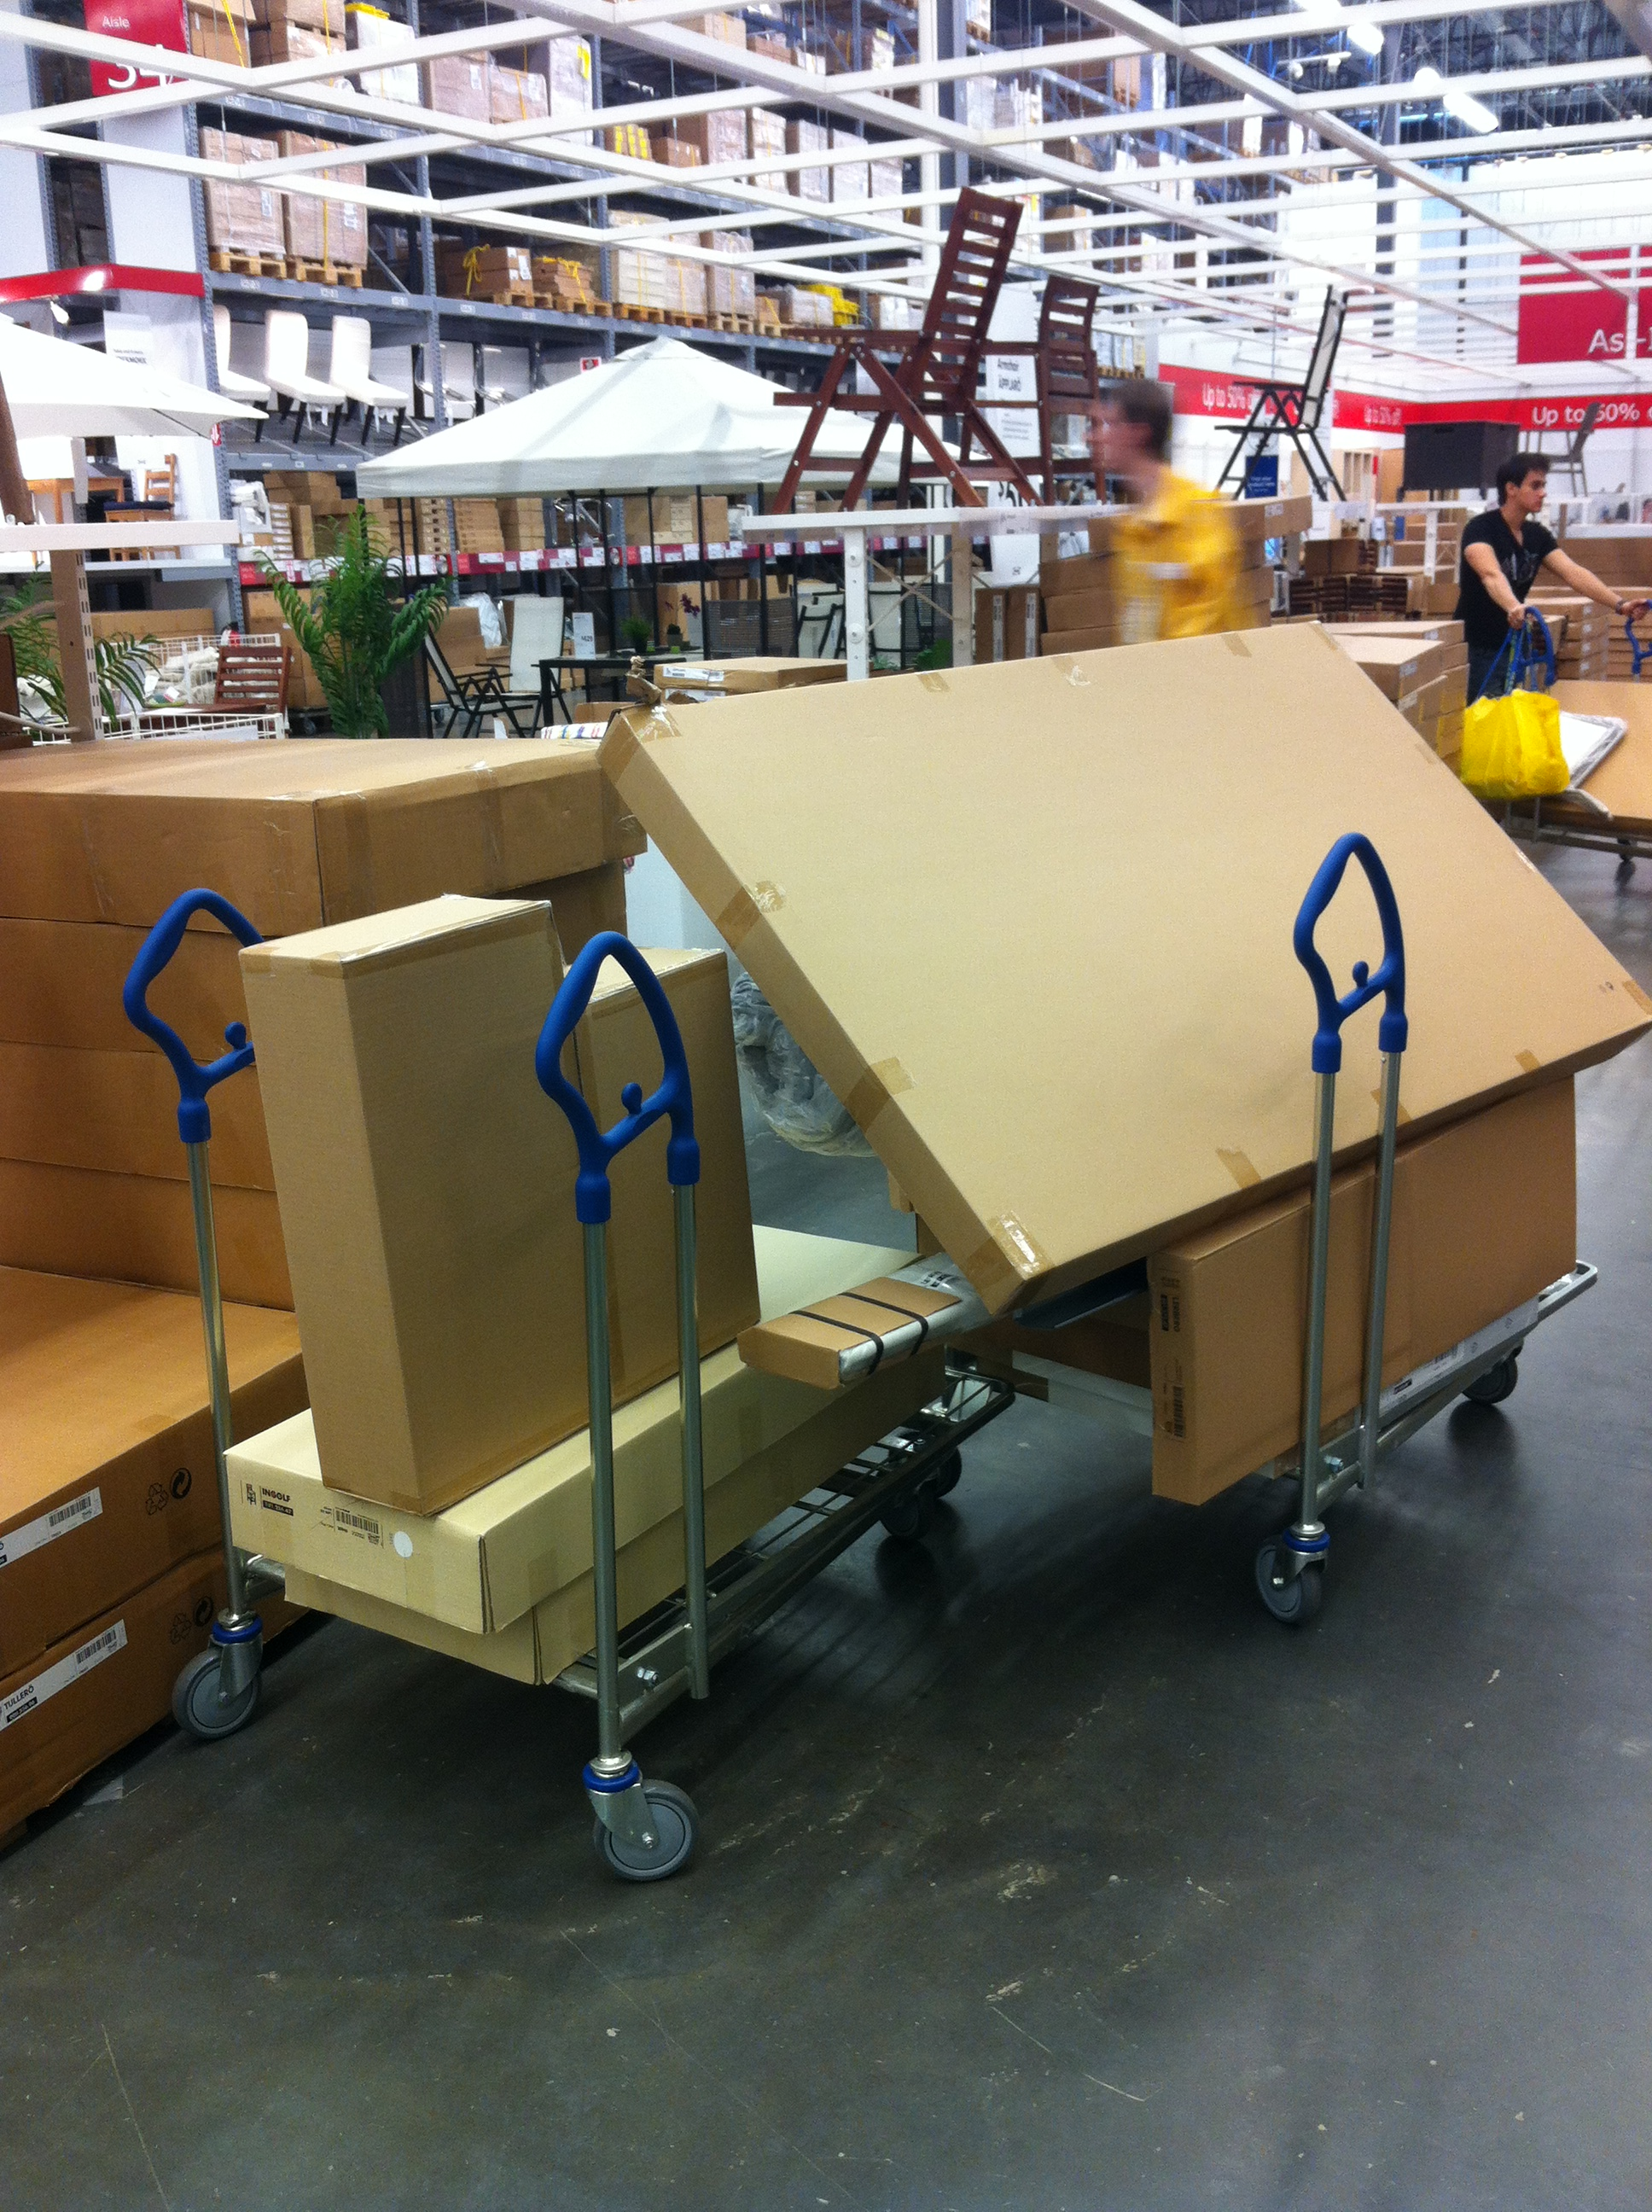 Home delivery service ikea monkey by sam 39 s small moves for Does ikea deliver same day